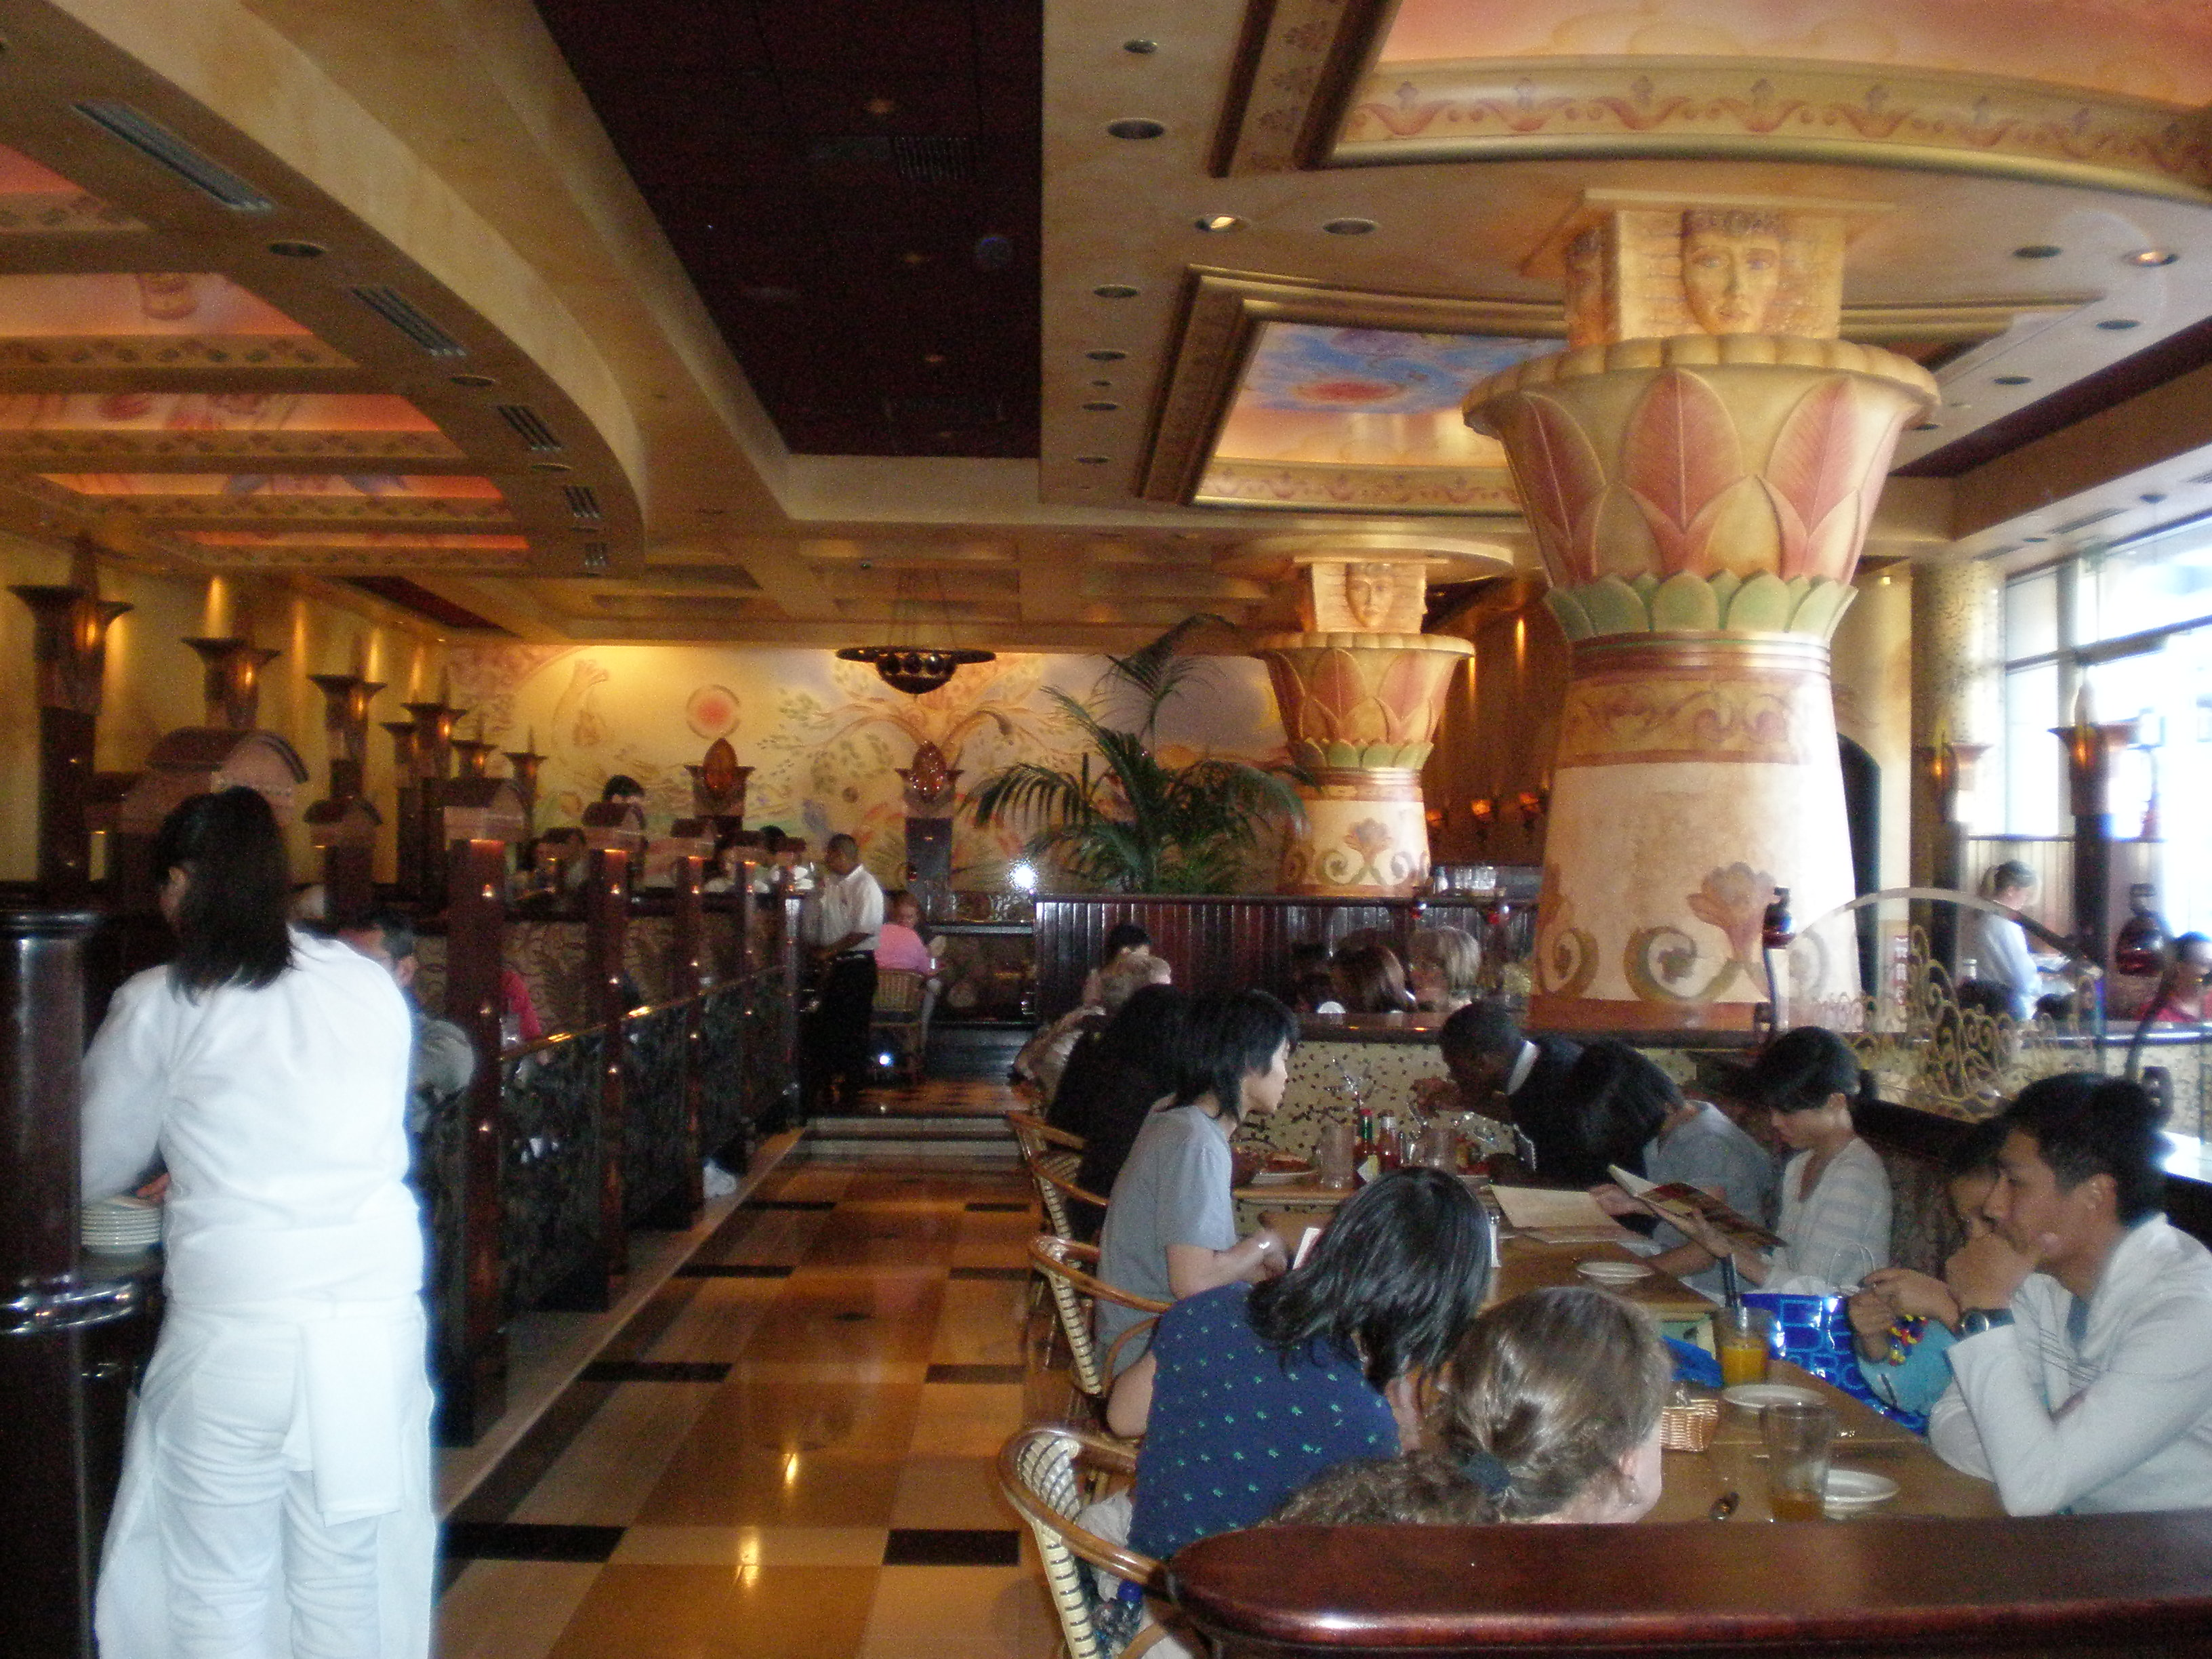 Cheesecake Factory Cheesecake Sizes File:cheesecake Factory sf